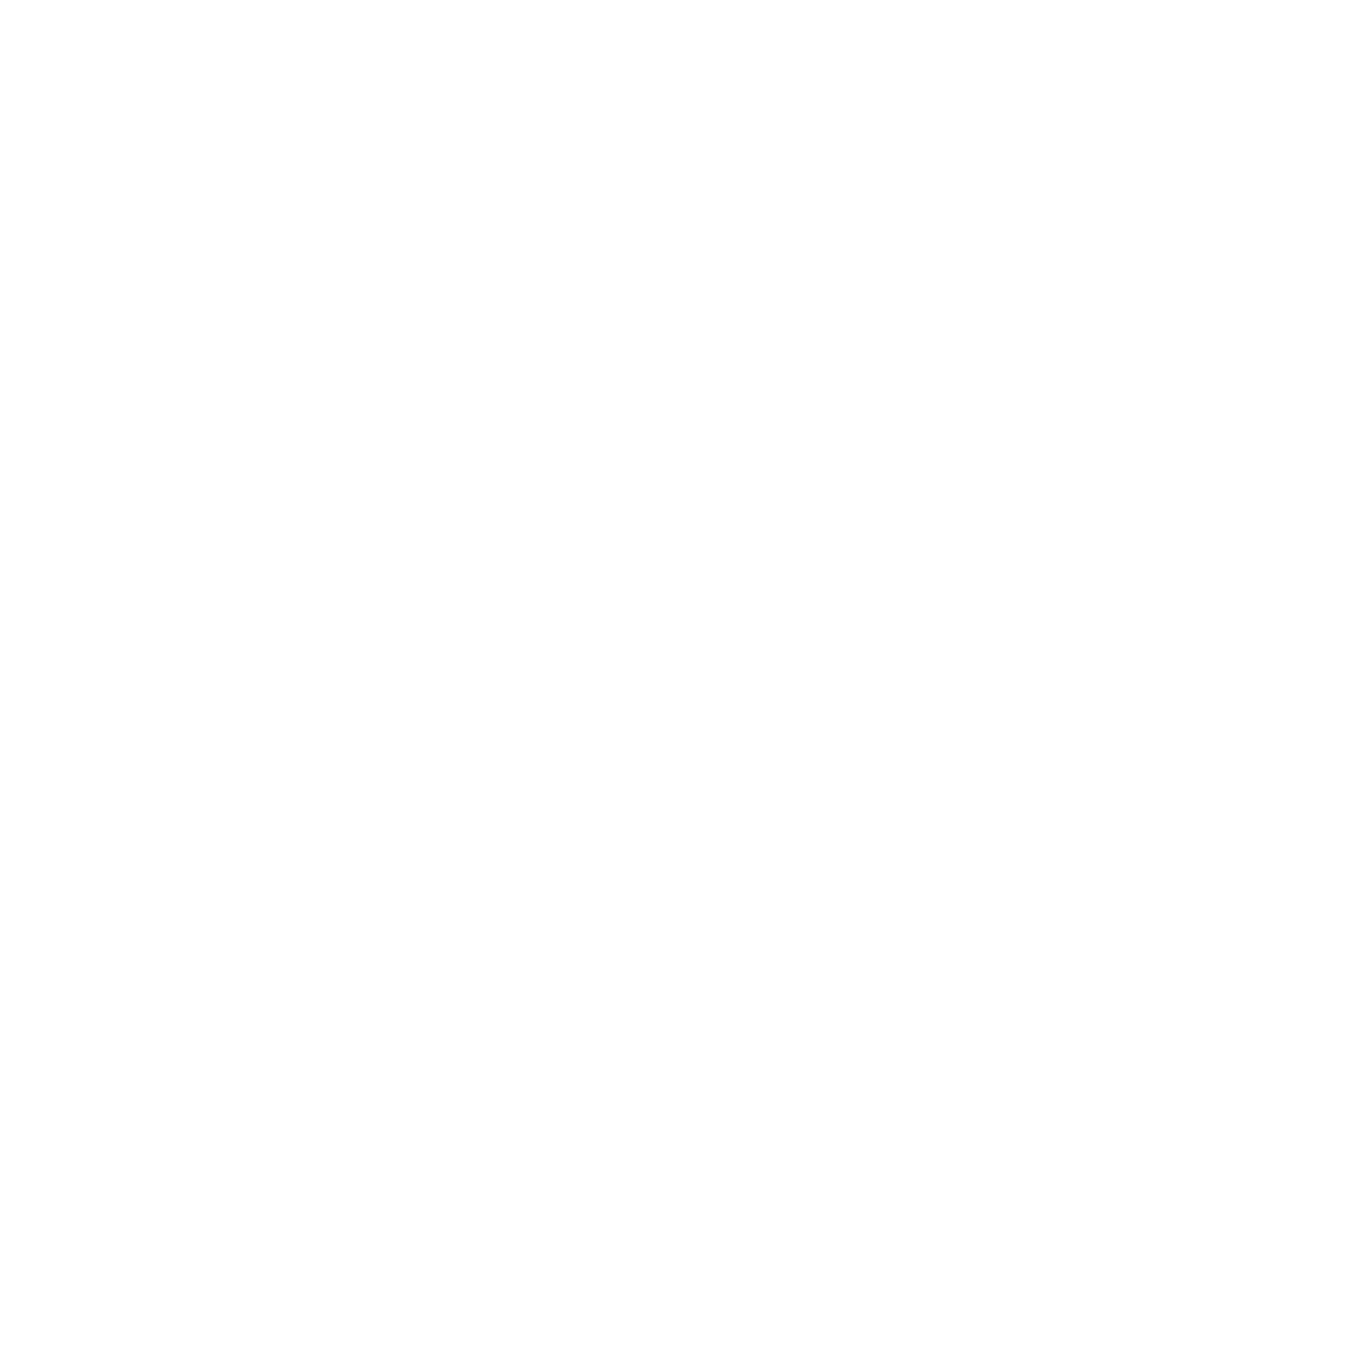 Sygmatic Feature - Listening - Personality-focused language learning for intermediate and advanced students specialized in natural communication & cultural fluency